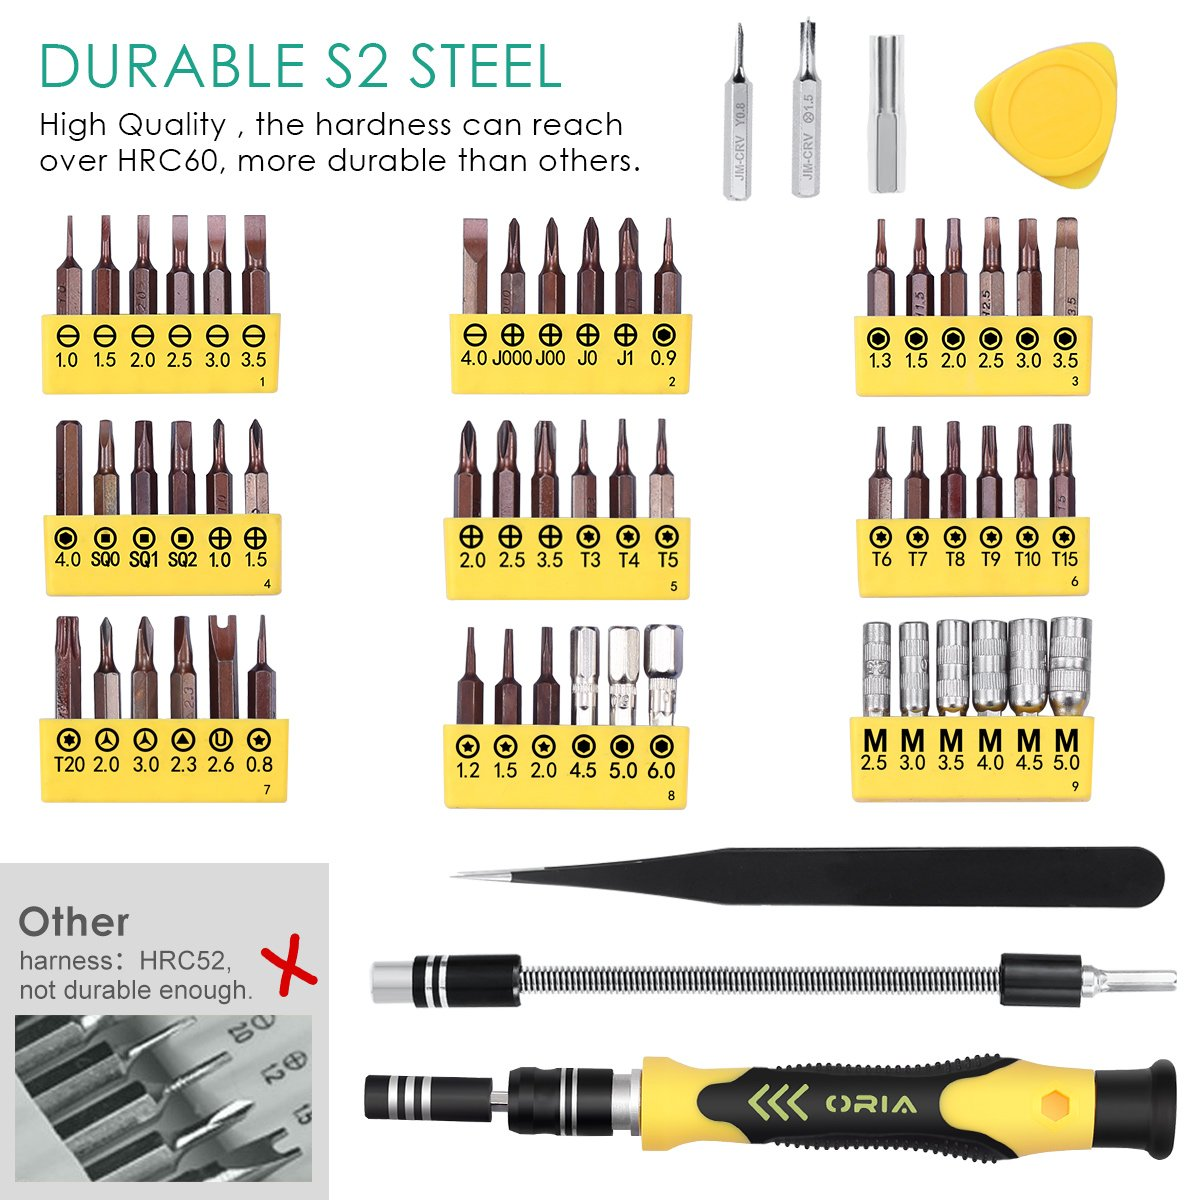 ORIA 64 in 1 Precision Screwdriver Set with 56 Bits, S2 Steel Magnetic Driver Kit, Professional Electronics Repair Tool Kit for Smartphone, Cell Phone, Computer, PS4, Tablet and Electronics Devices by ORIA (Image #2)